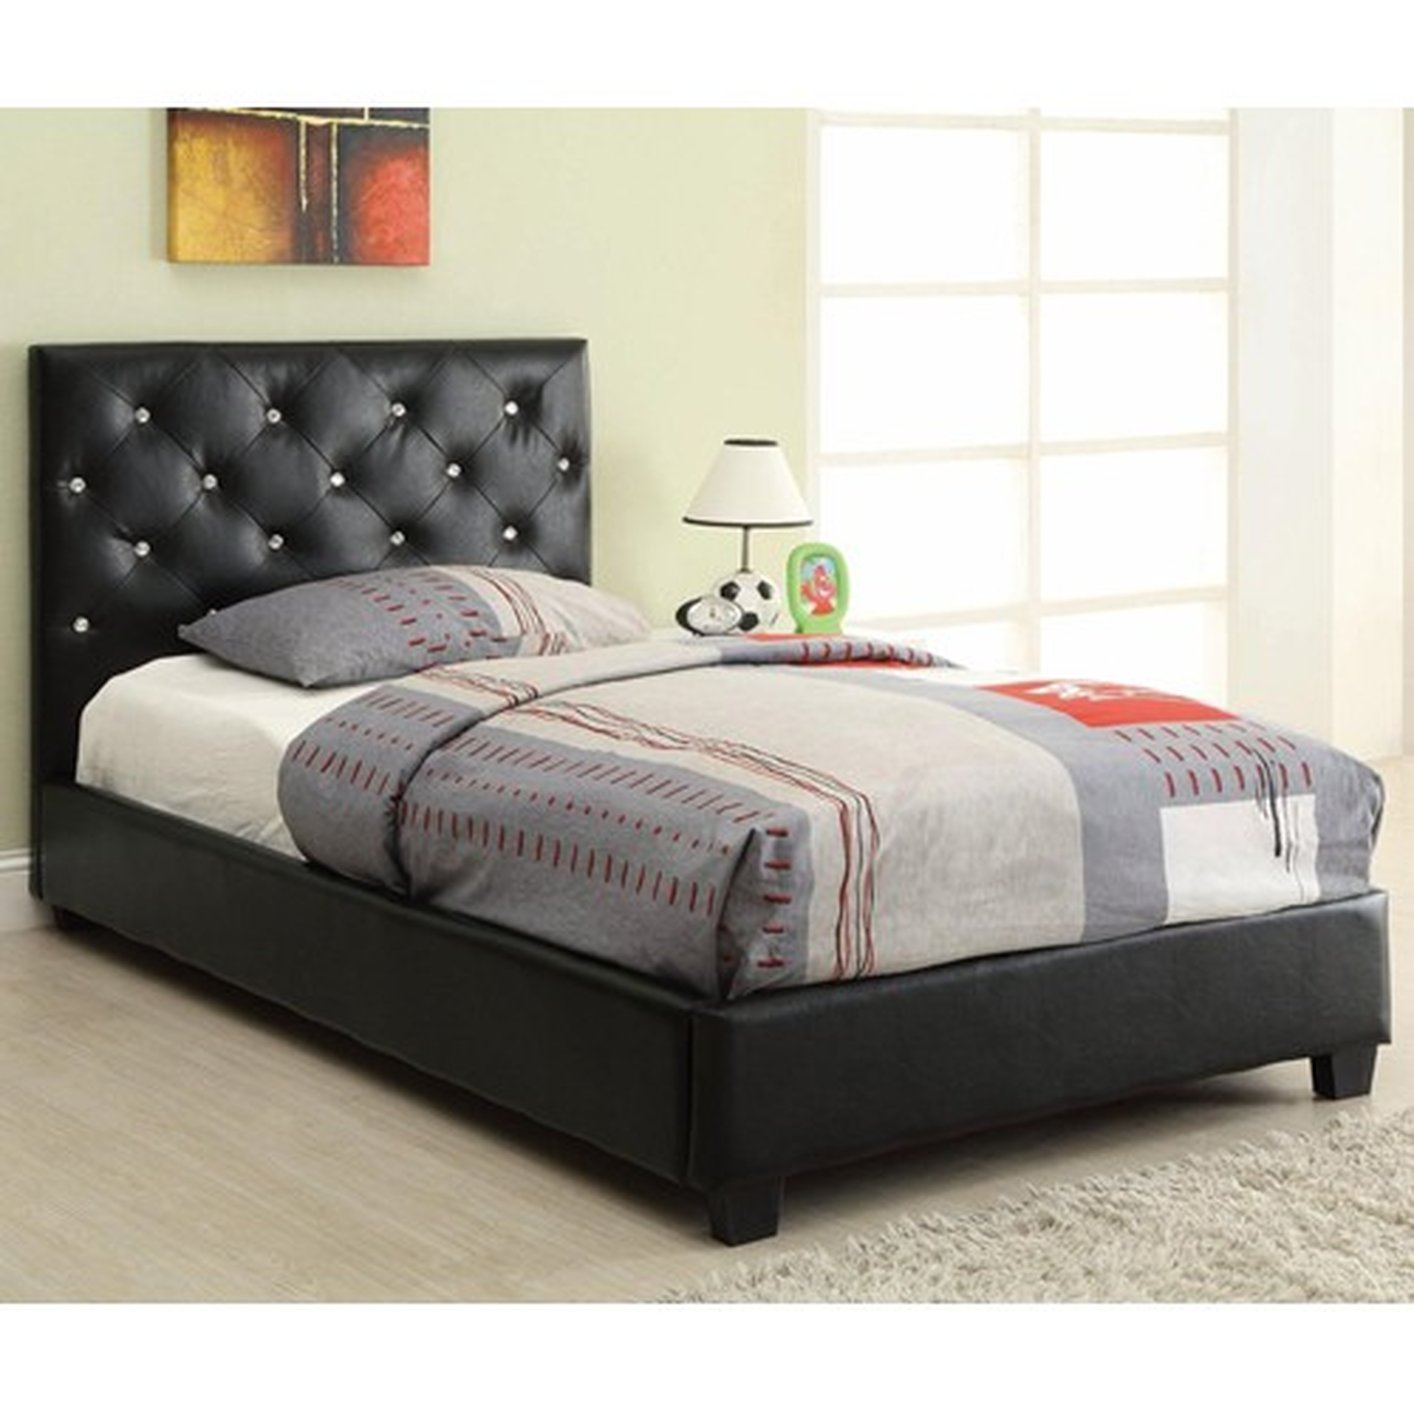 Coaster 300391t Black Twin Size Leather Bed Steal A Sofa Furniture Outlet Los Angeles Ca